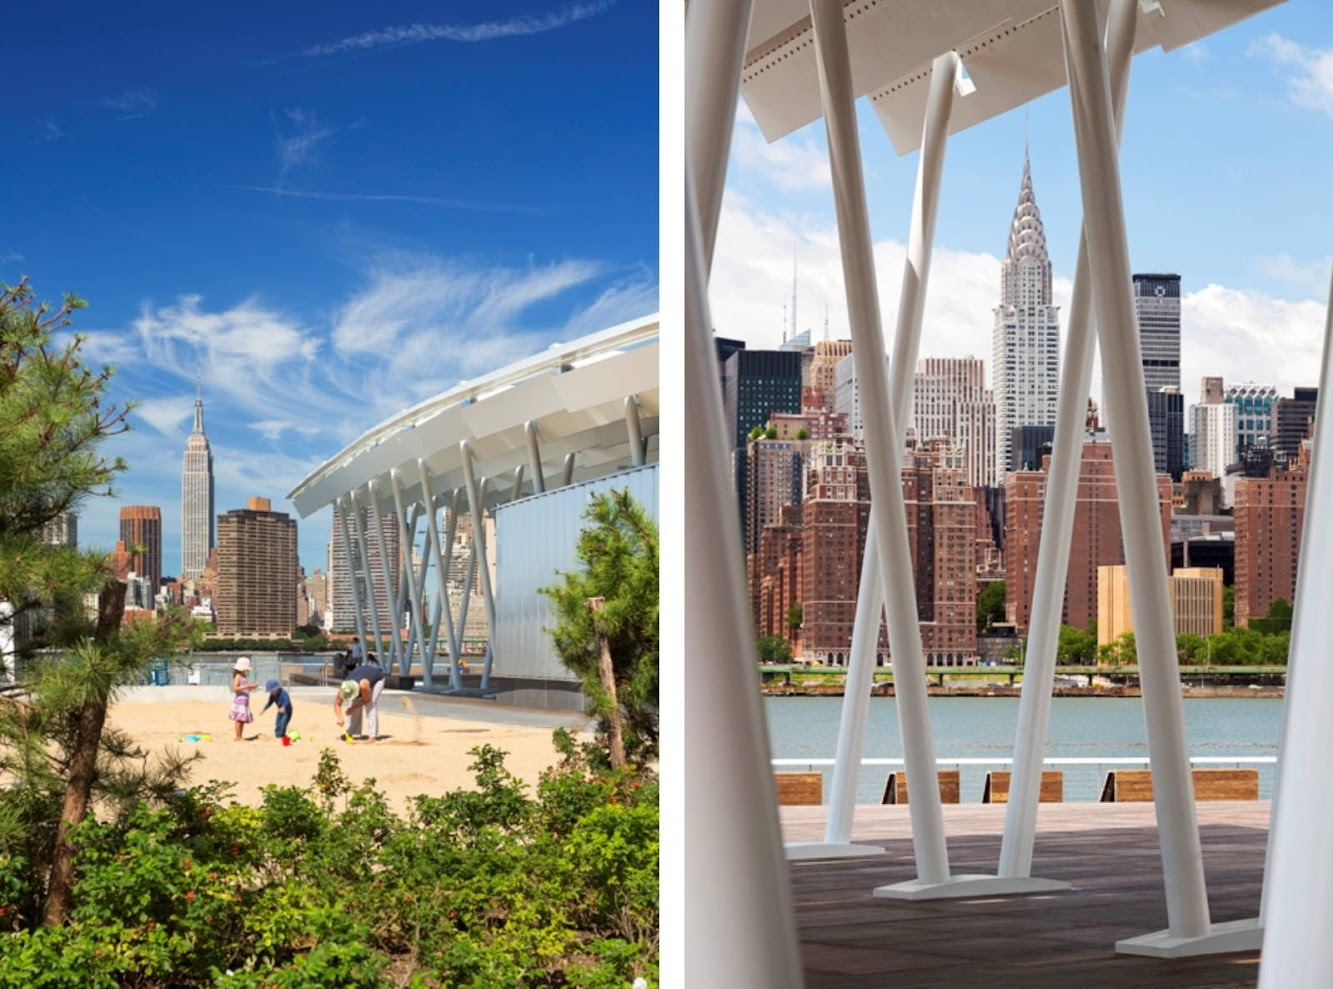 09-Hunters-Point-South-Waterfront-Park-by-Thomas-Balsley-Associates-and-Weiss/Manfredi